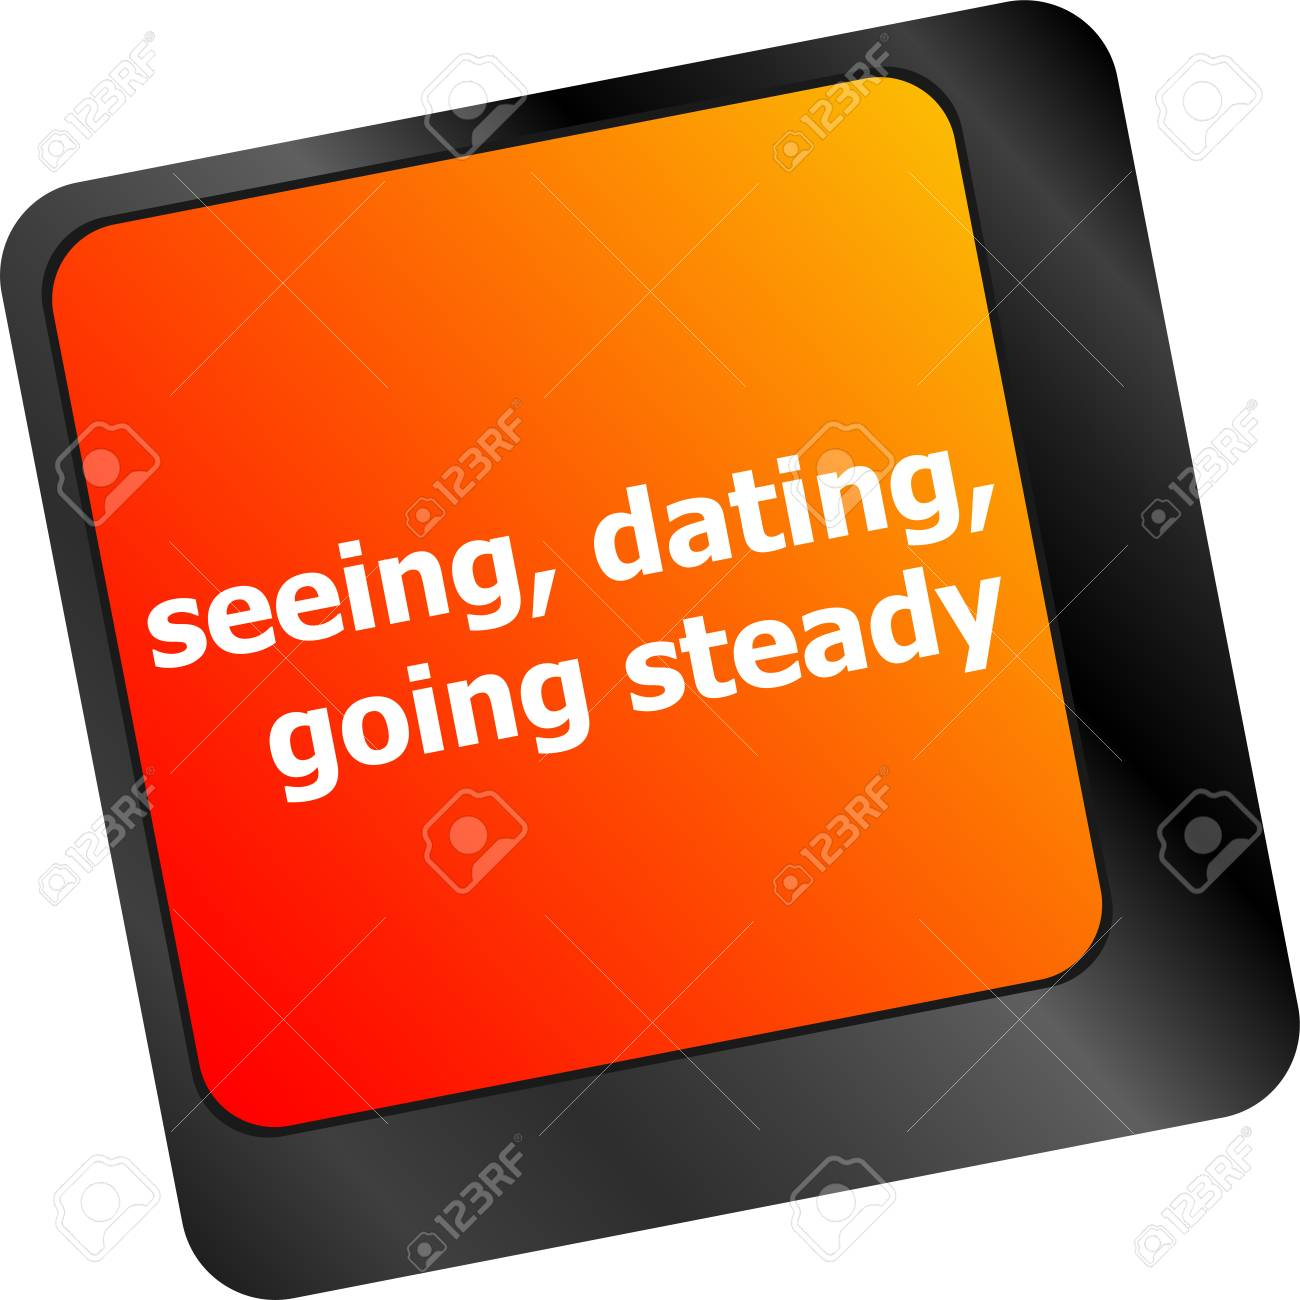 Dating going steady